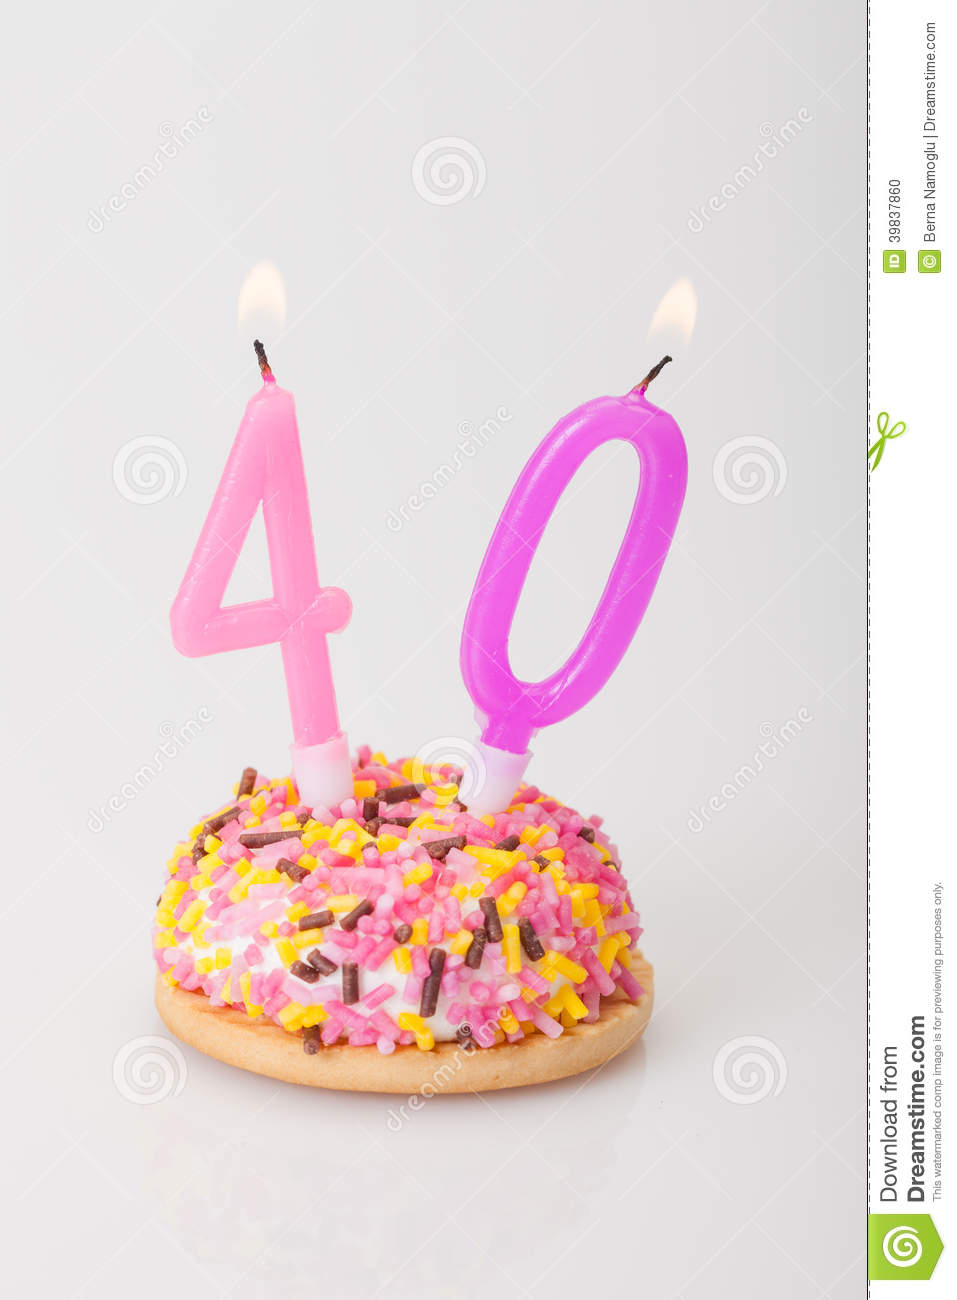 Birthday Cake And Candle For Age 40